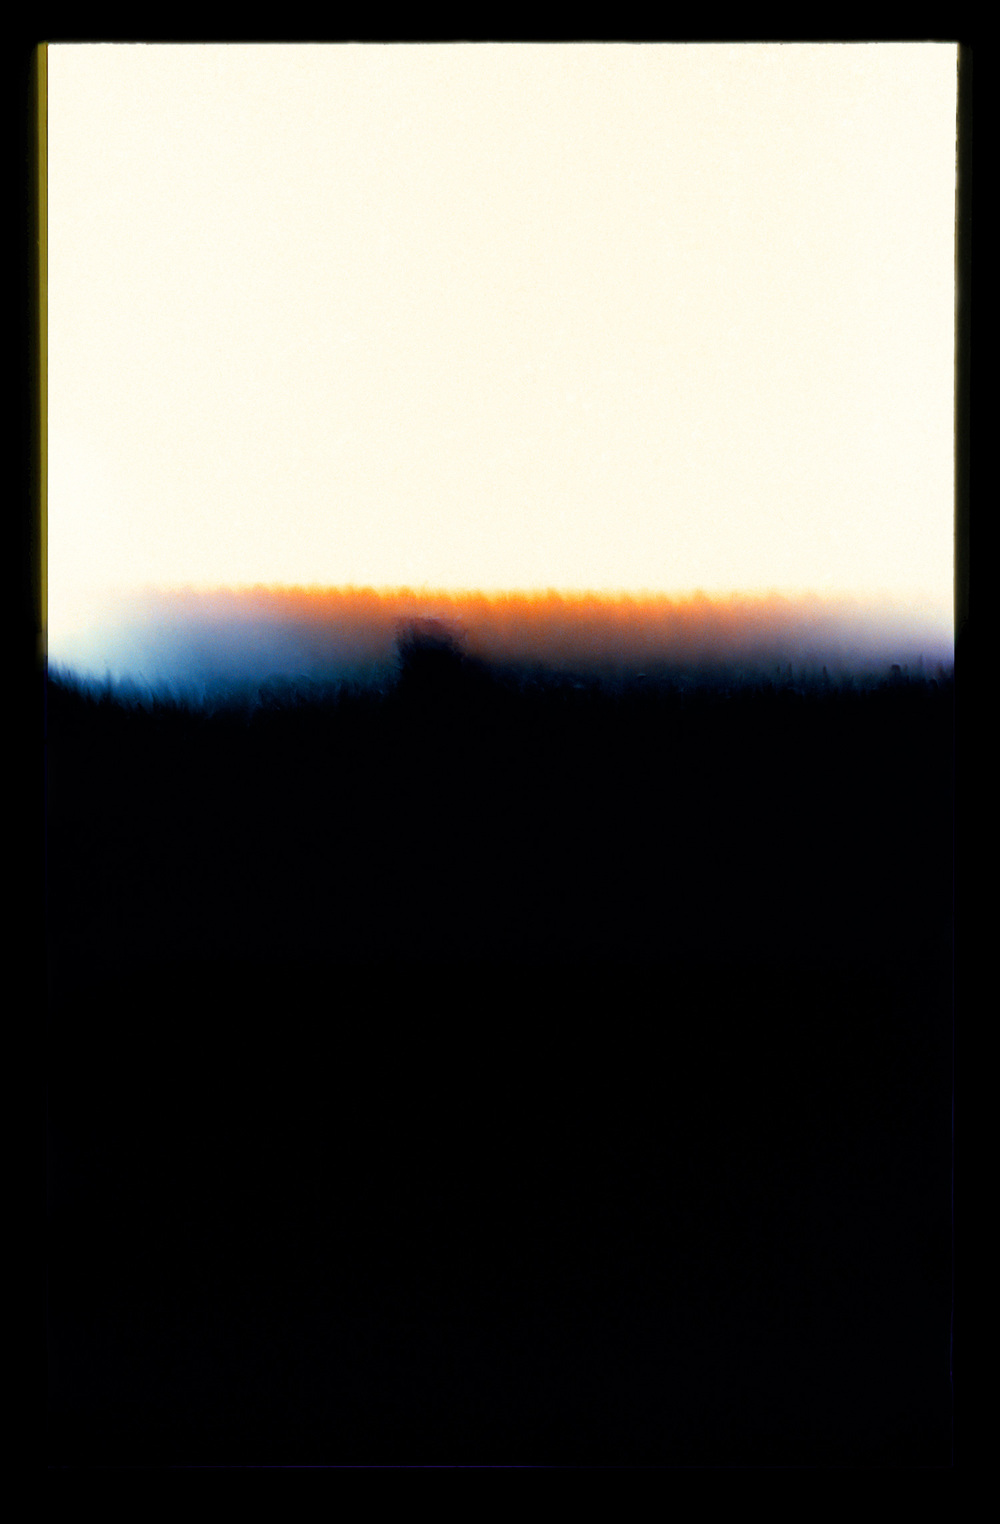 Endings - Fujichrome, No.0A. 29/01/1987